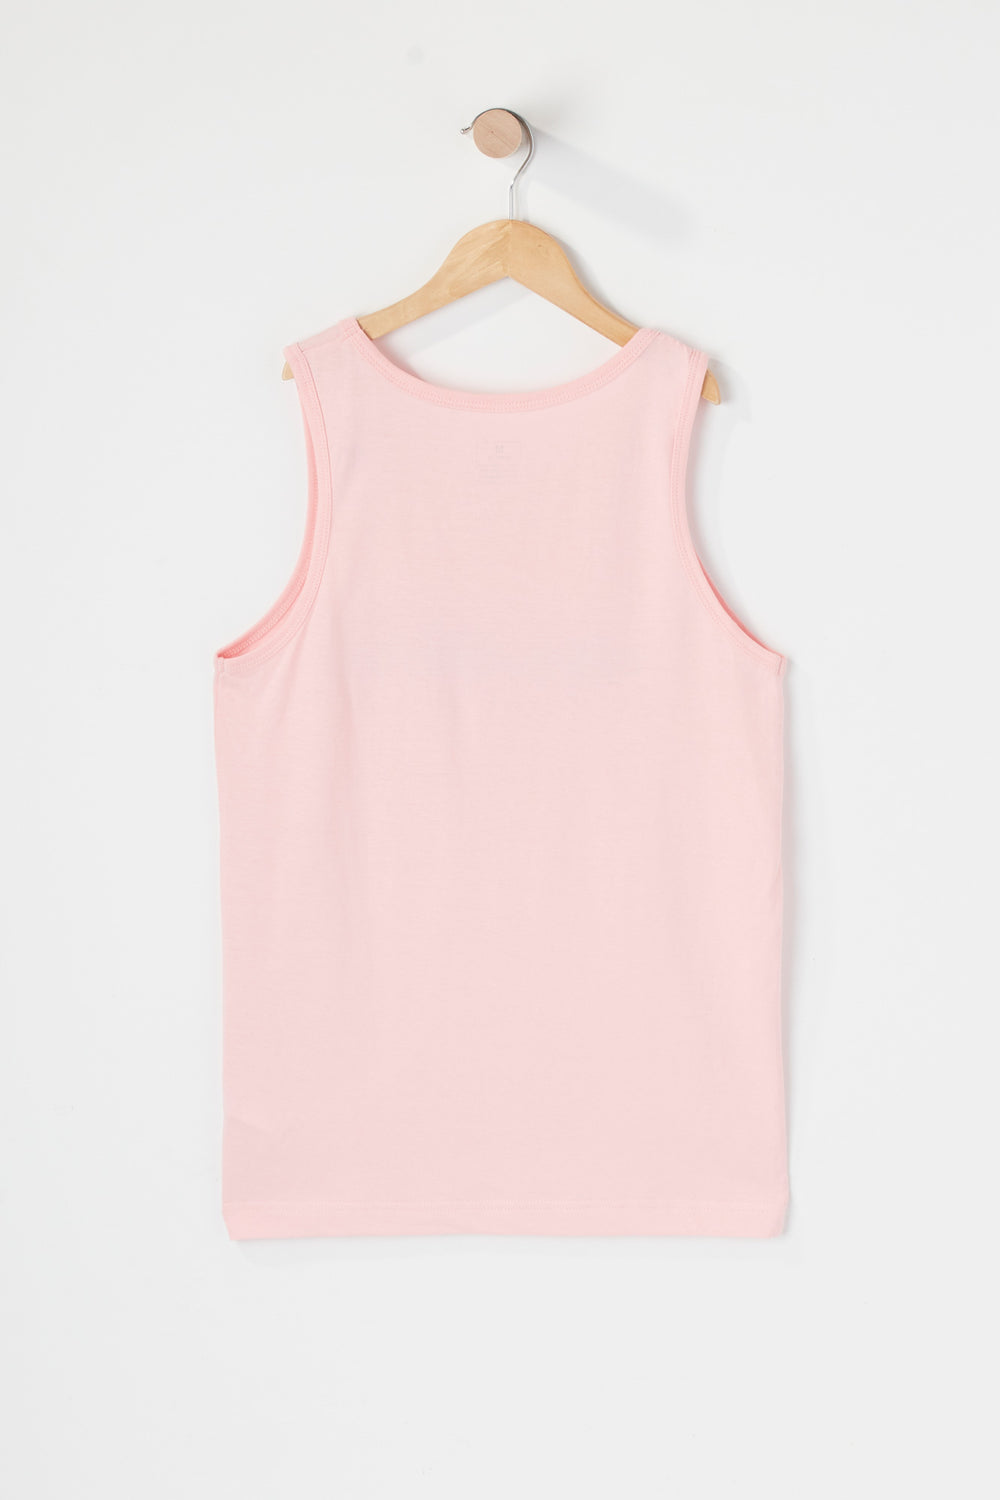 Camisole Imprimée West49 Junior Rose pale